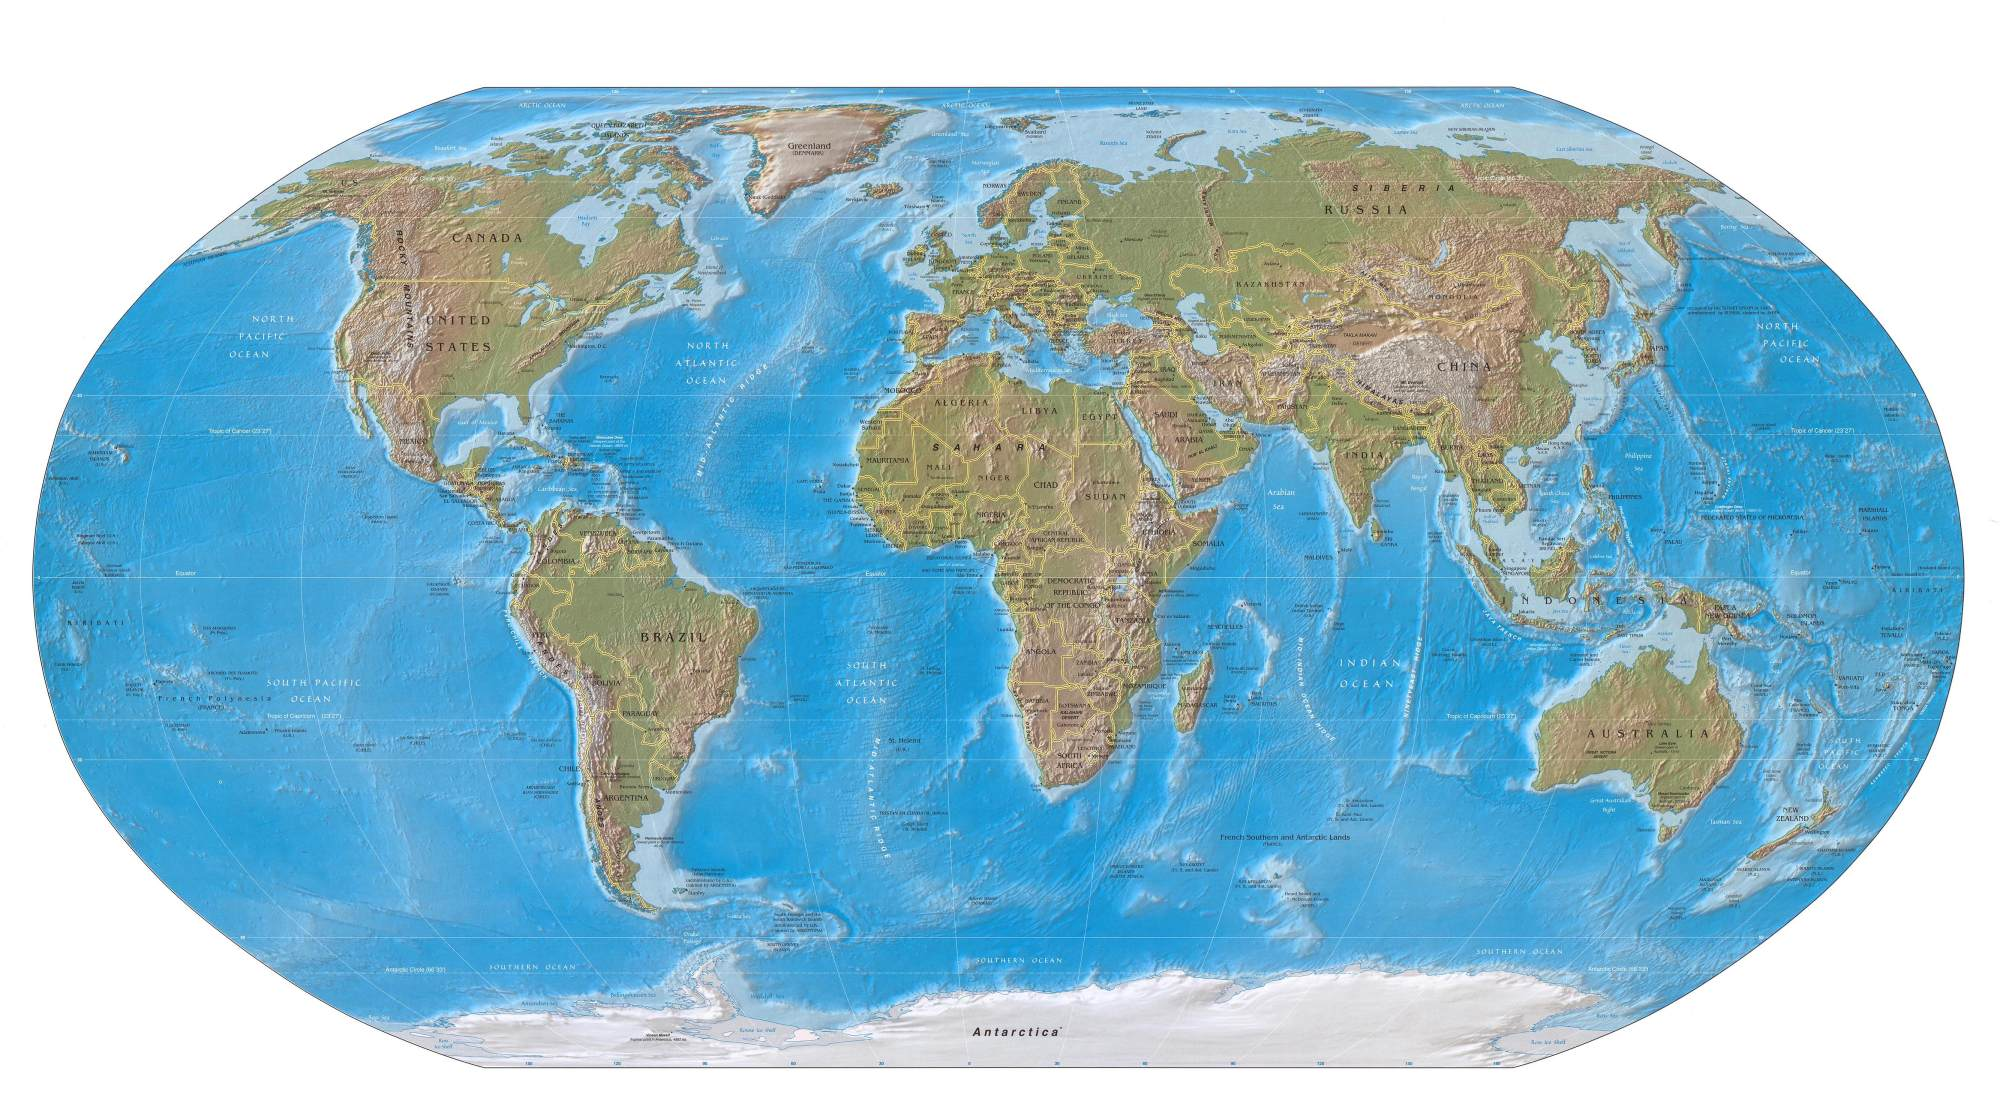 World map no background roho4senses world map no background gumiabroncs Gallery